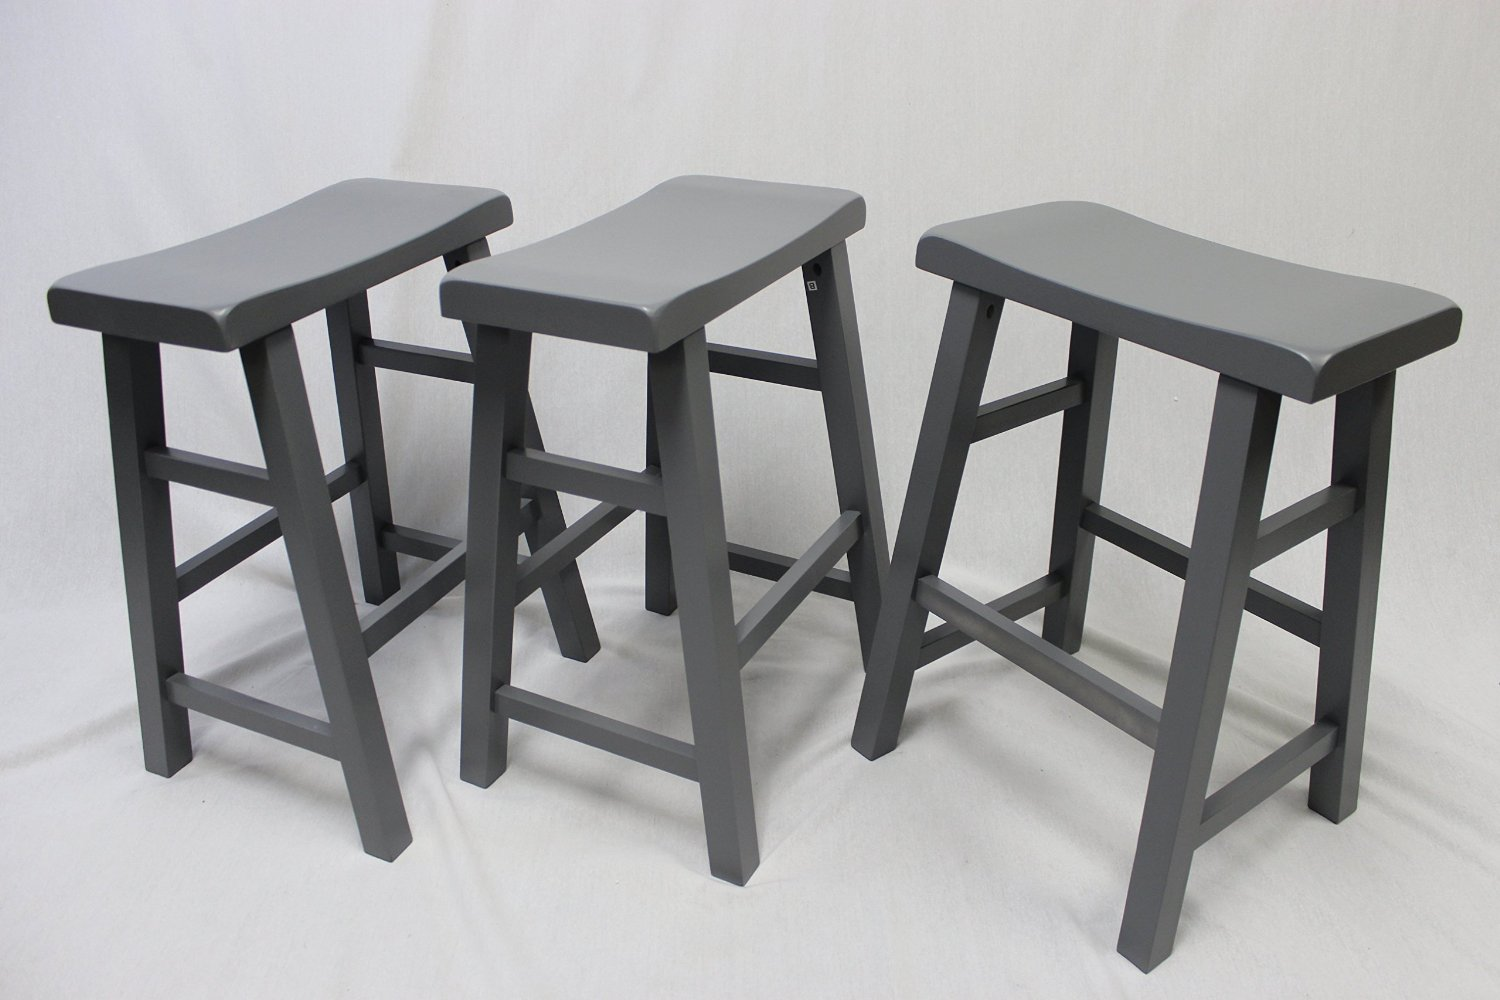 Chicago Stool And Chair Inc On Walmart Seller Reviews